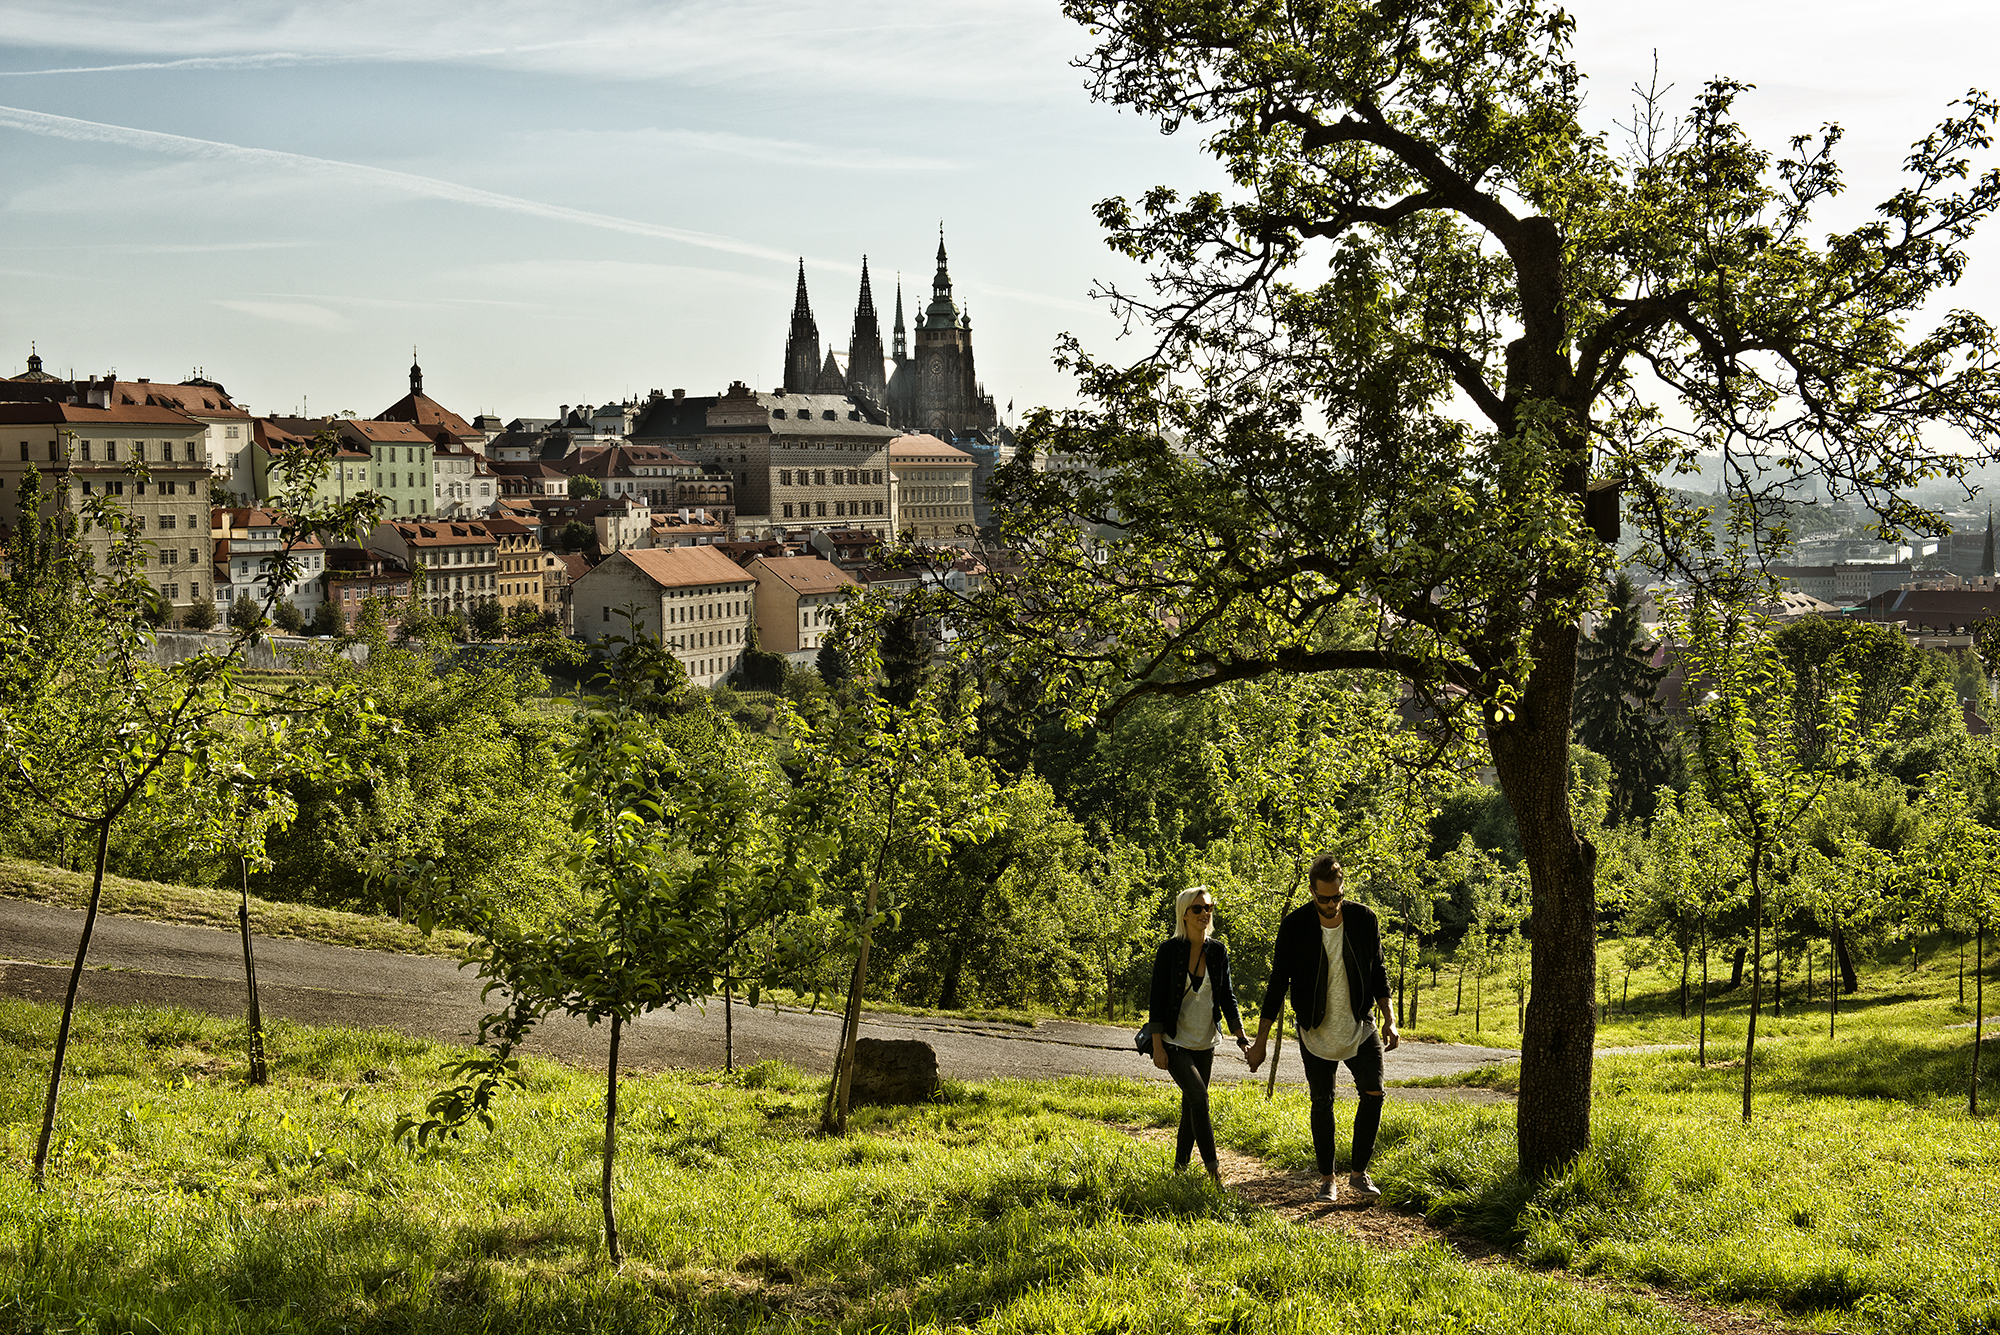 A spring view of the Prague Castle panorama in the background, with a young couple walking up the Petřín Hill path in the foreground